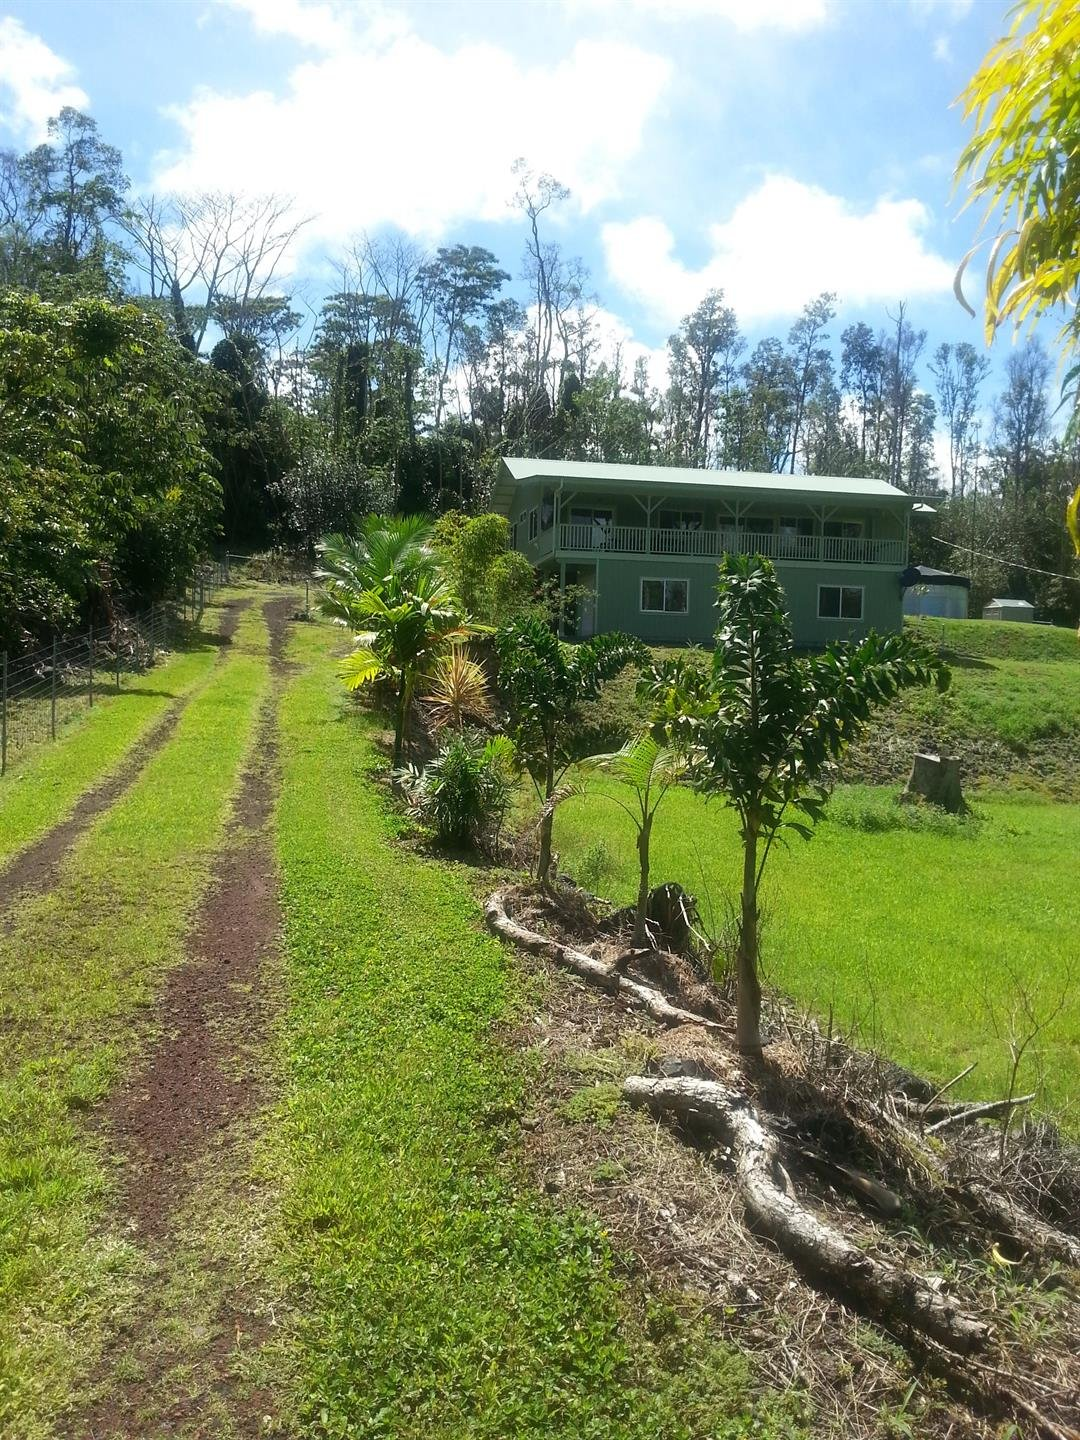 This is the home of Belleville, IL native Hope Northway. The house was destroyed by lava from the Kilauea volcano eruption of 2018 and is believed to buried by 40 feet of lava.